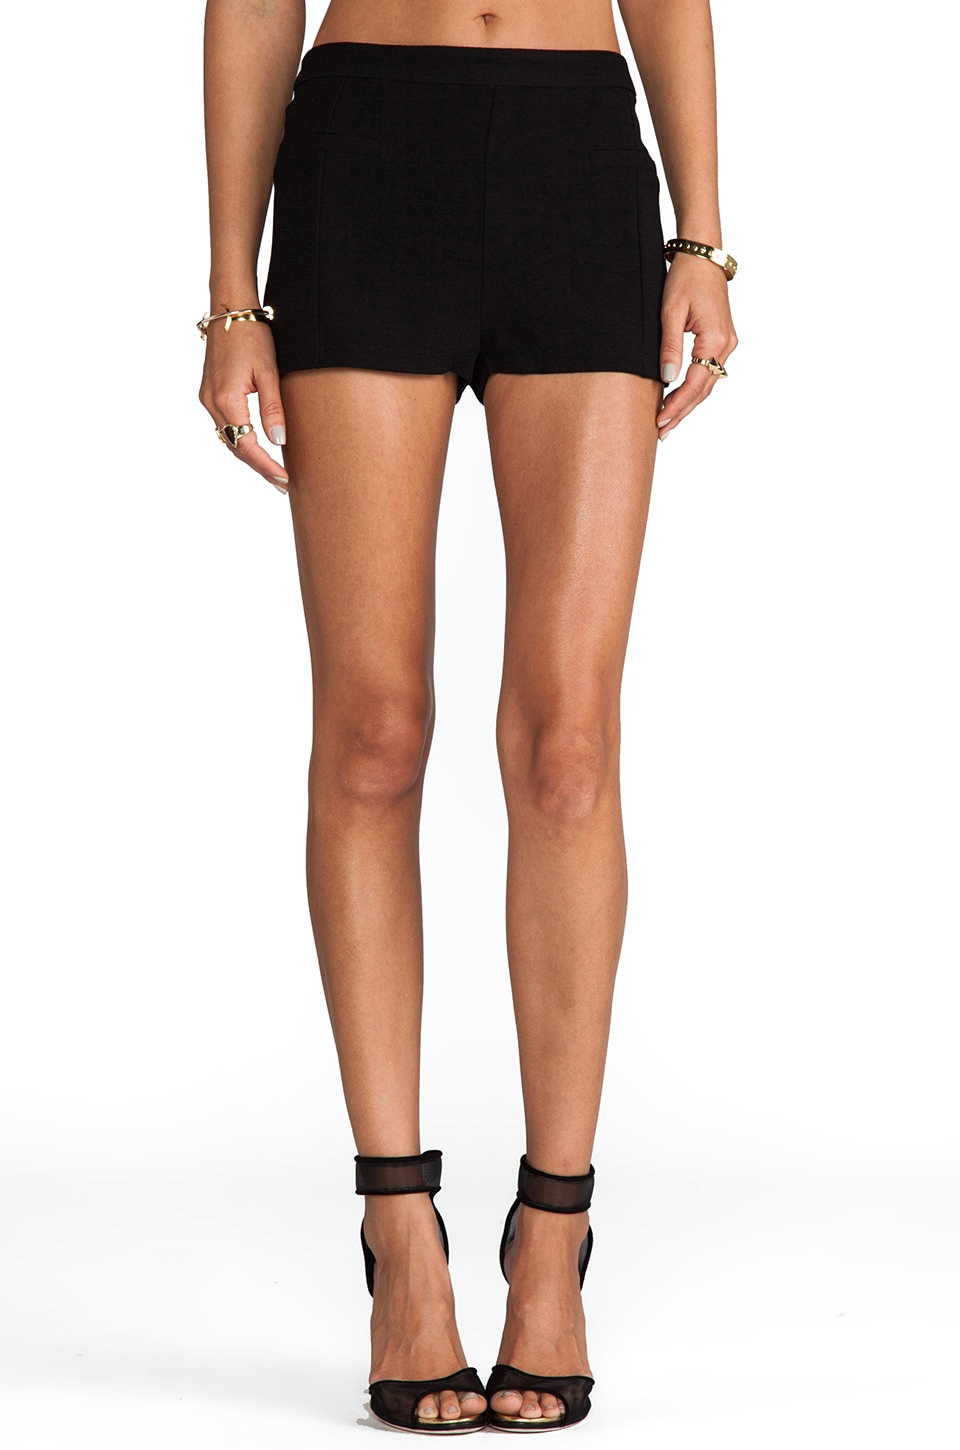 Ladakh Close To Me Shorts in Black